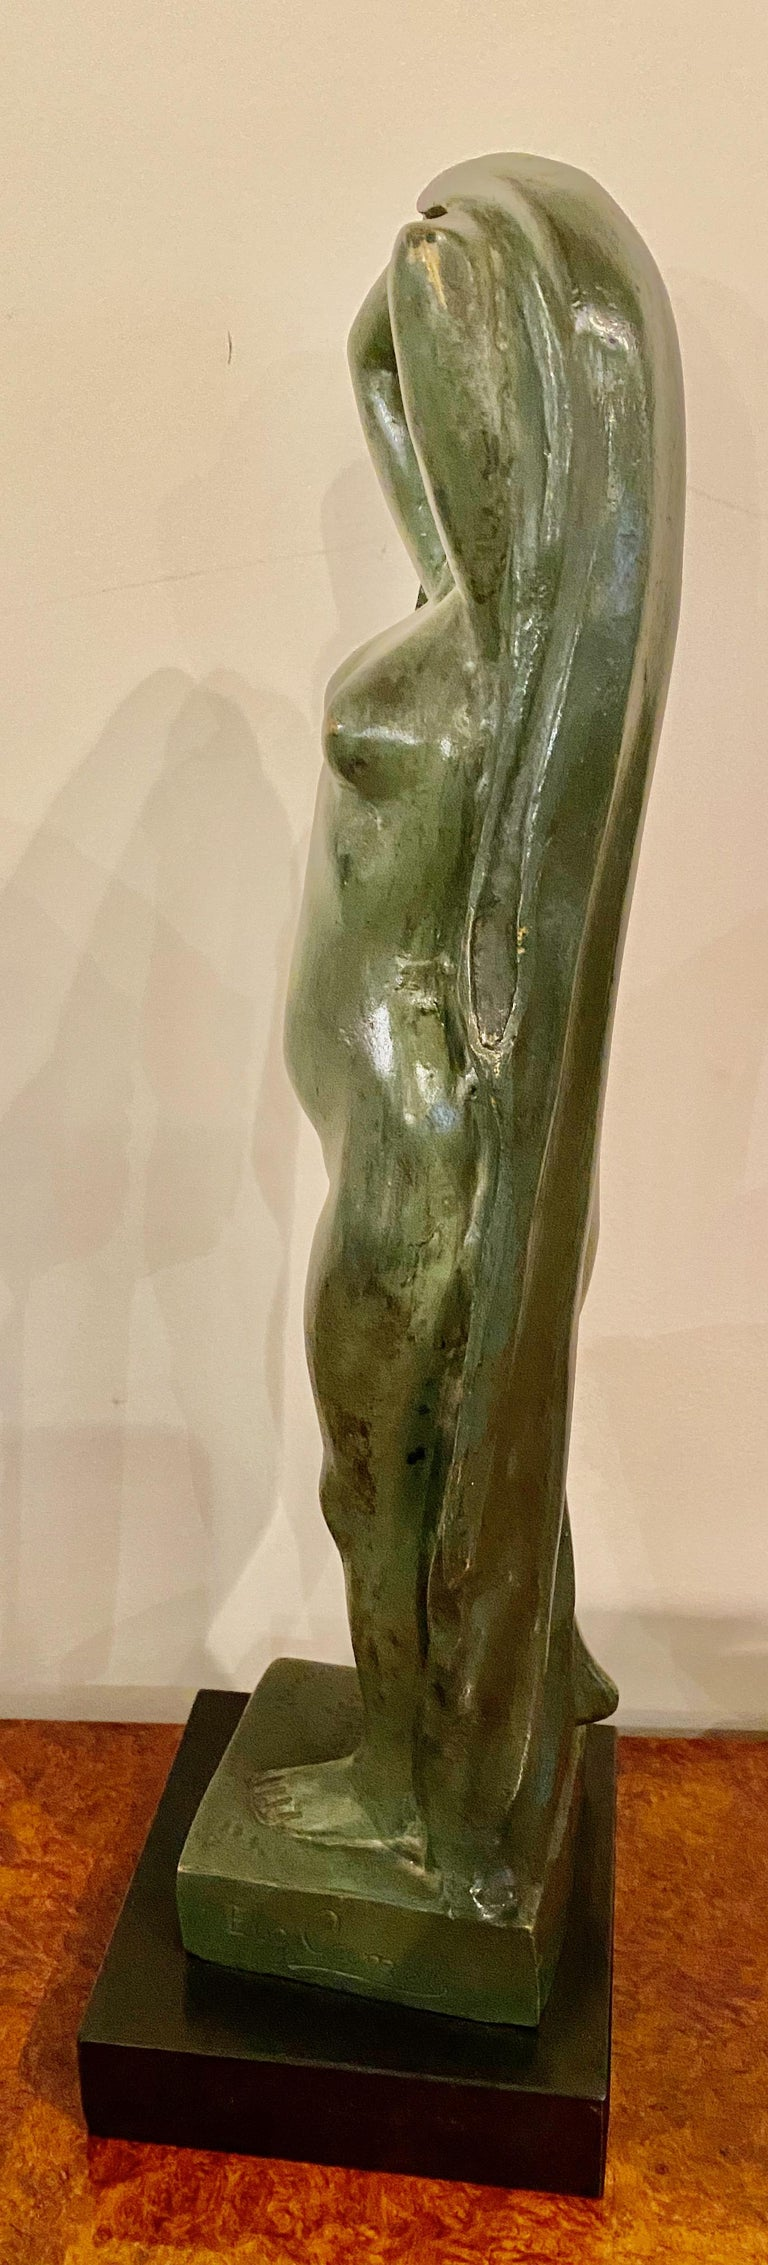 Art Deco Figure by Eugene Canneel Bronze, 1930s In Good Condition For Sale In Oakland, CA